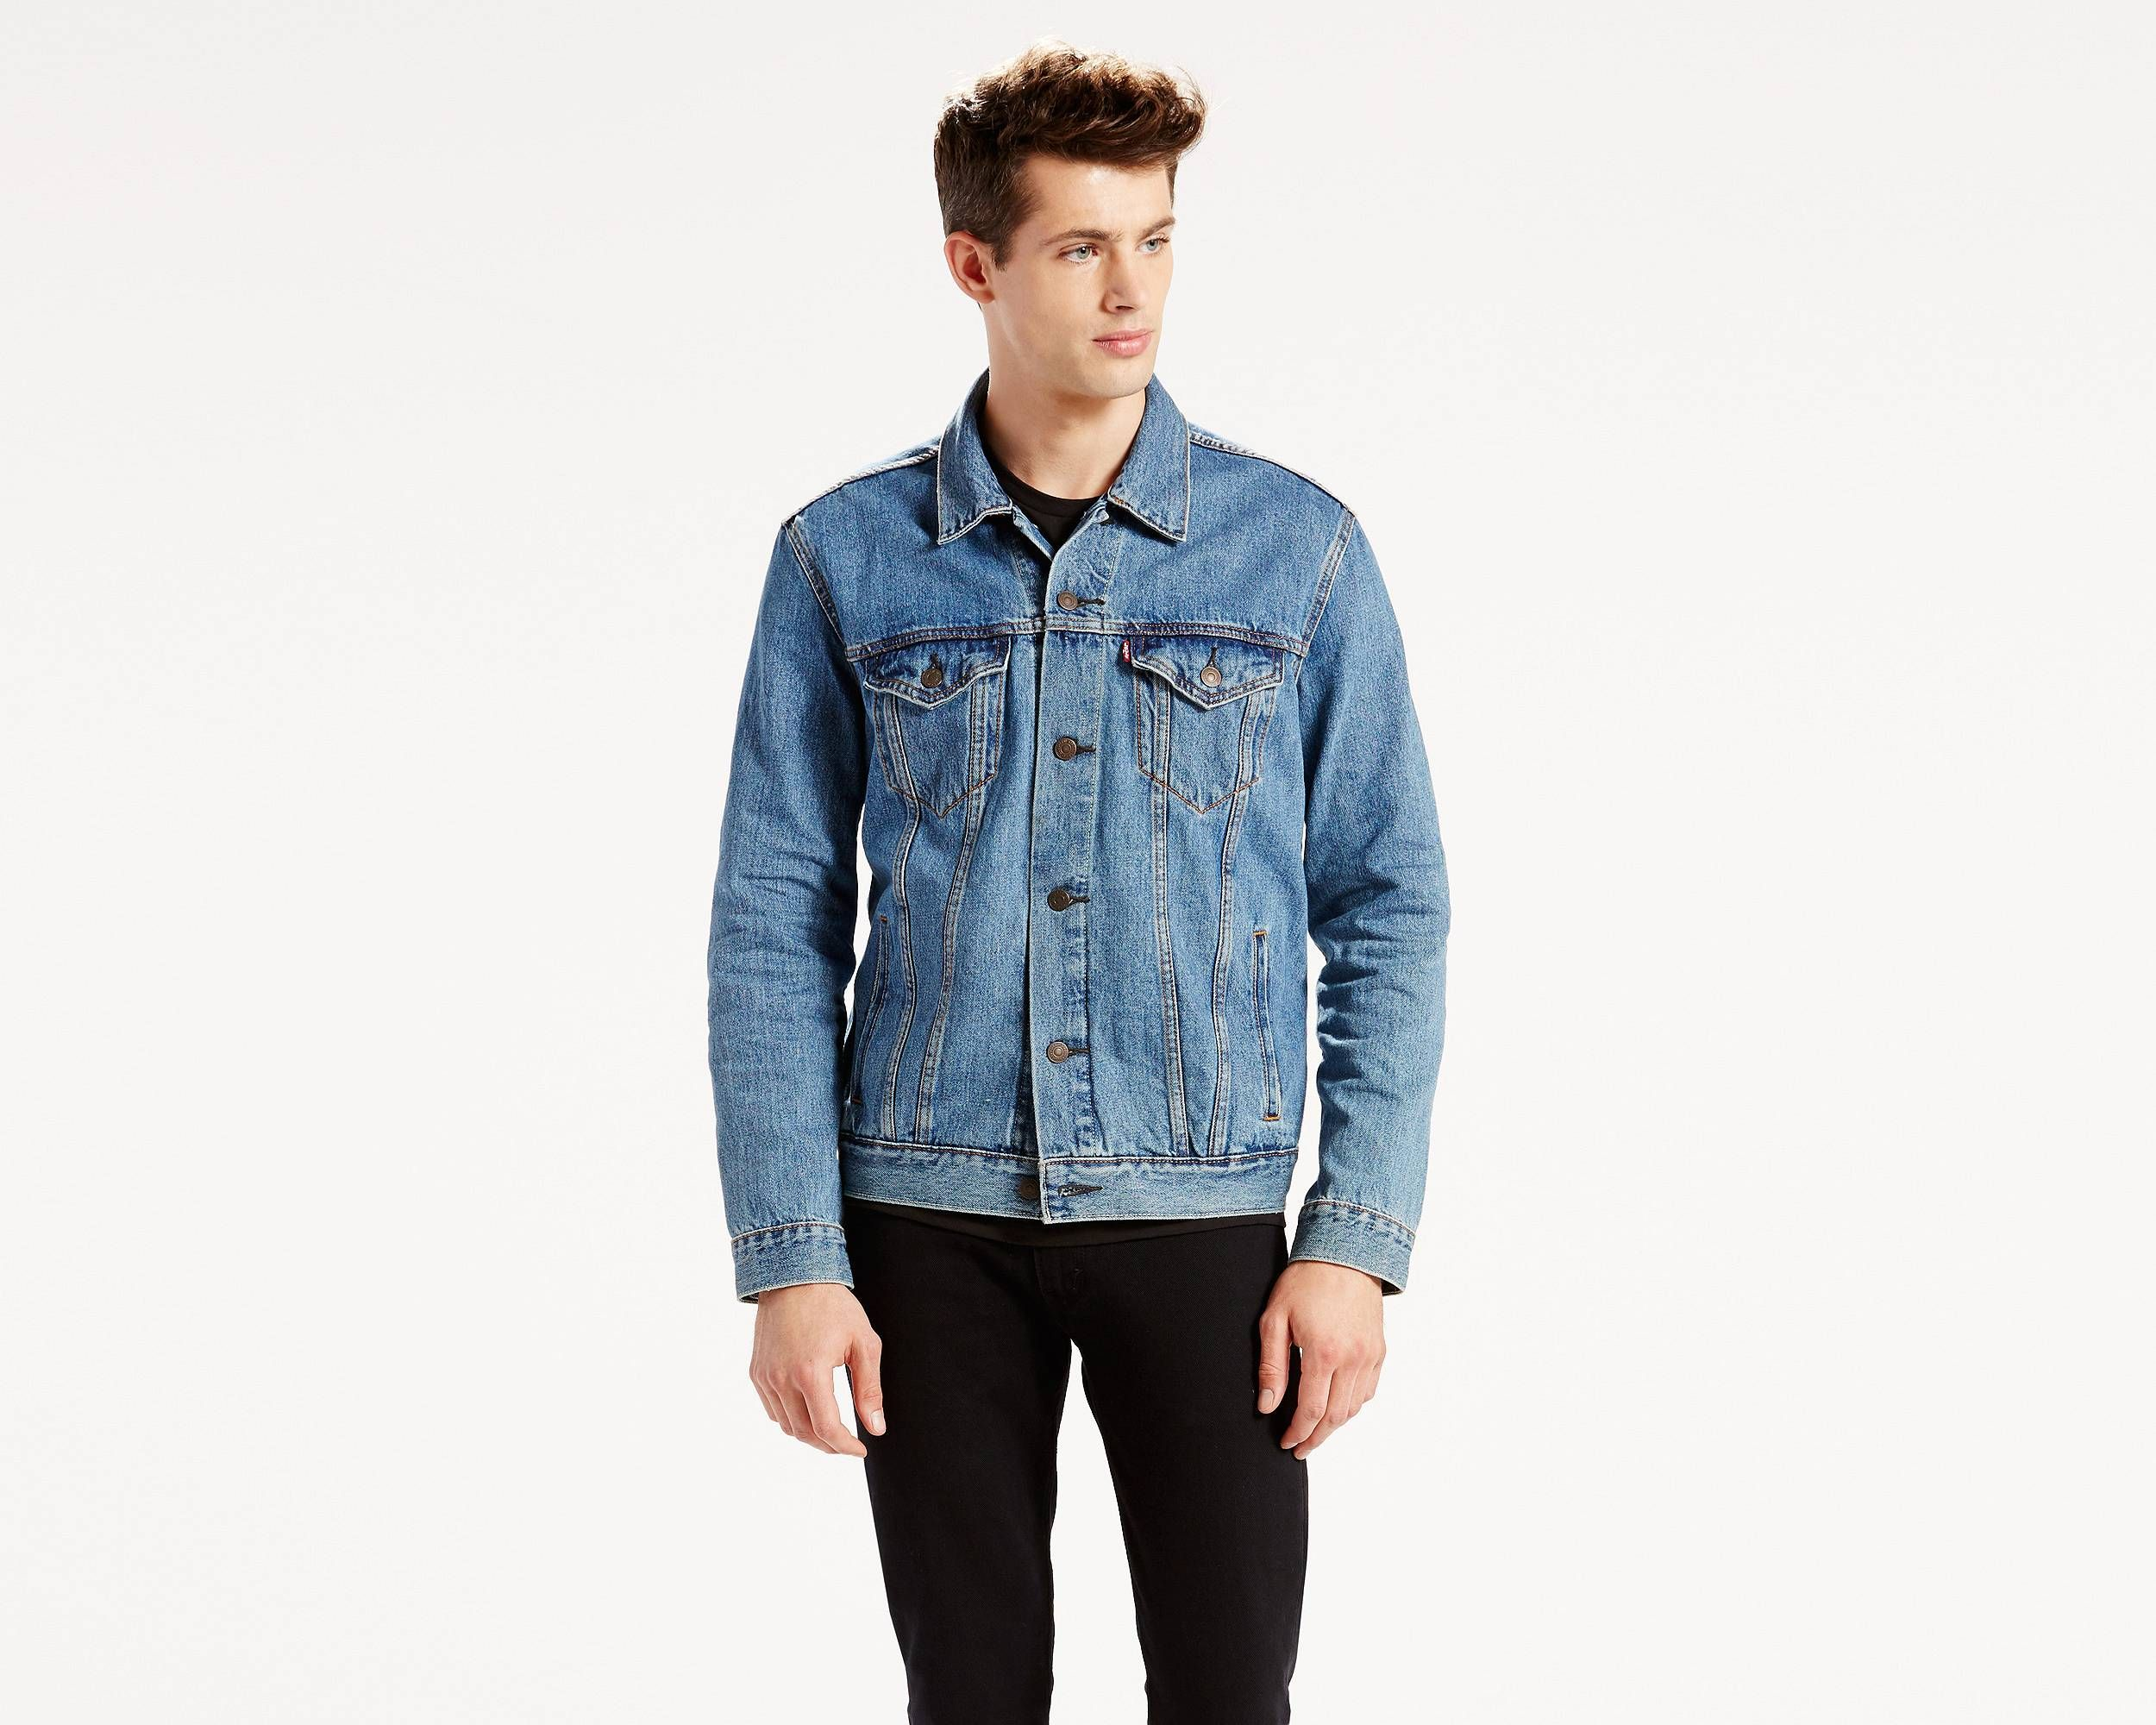 The Trucker fit is our most universal denim jacket fit for men ...